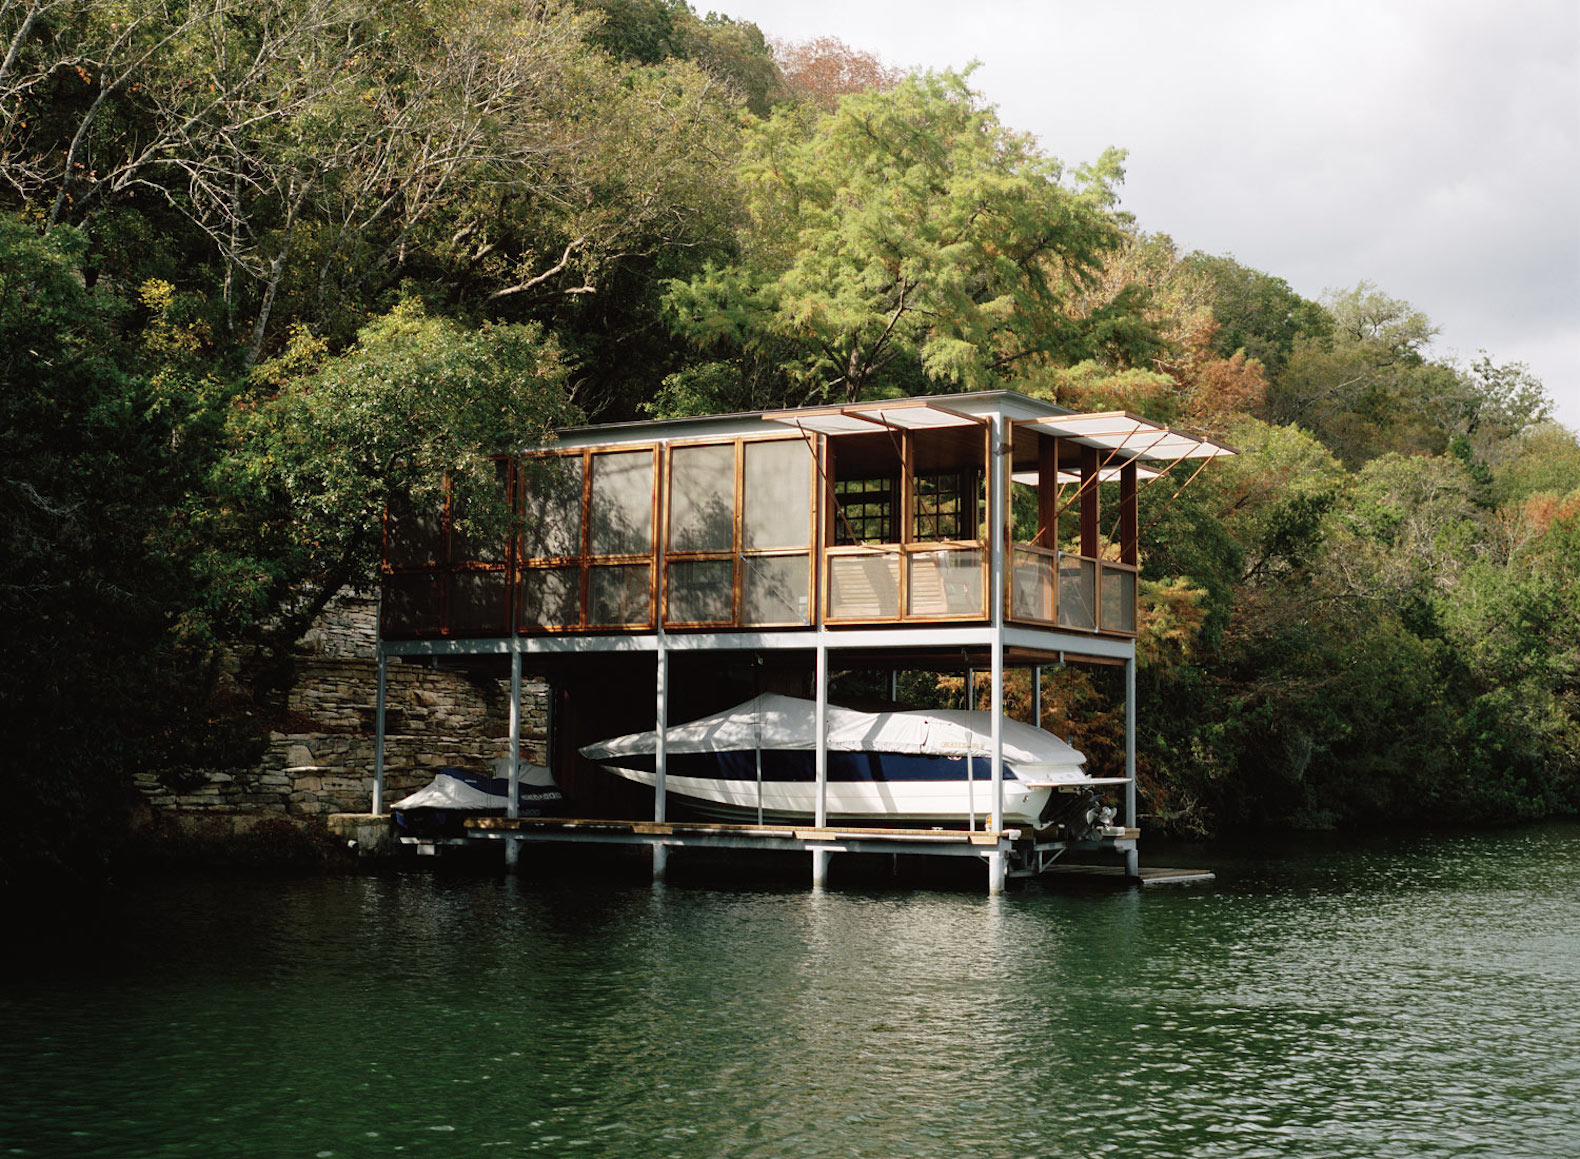 Off Grid Lake House Escapes The Texan Heat With Minimal Landscape Impact Part 90